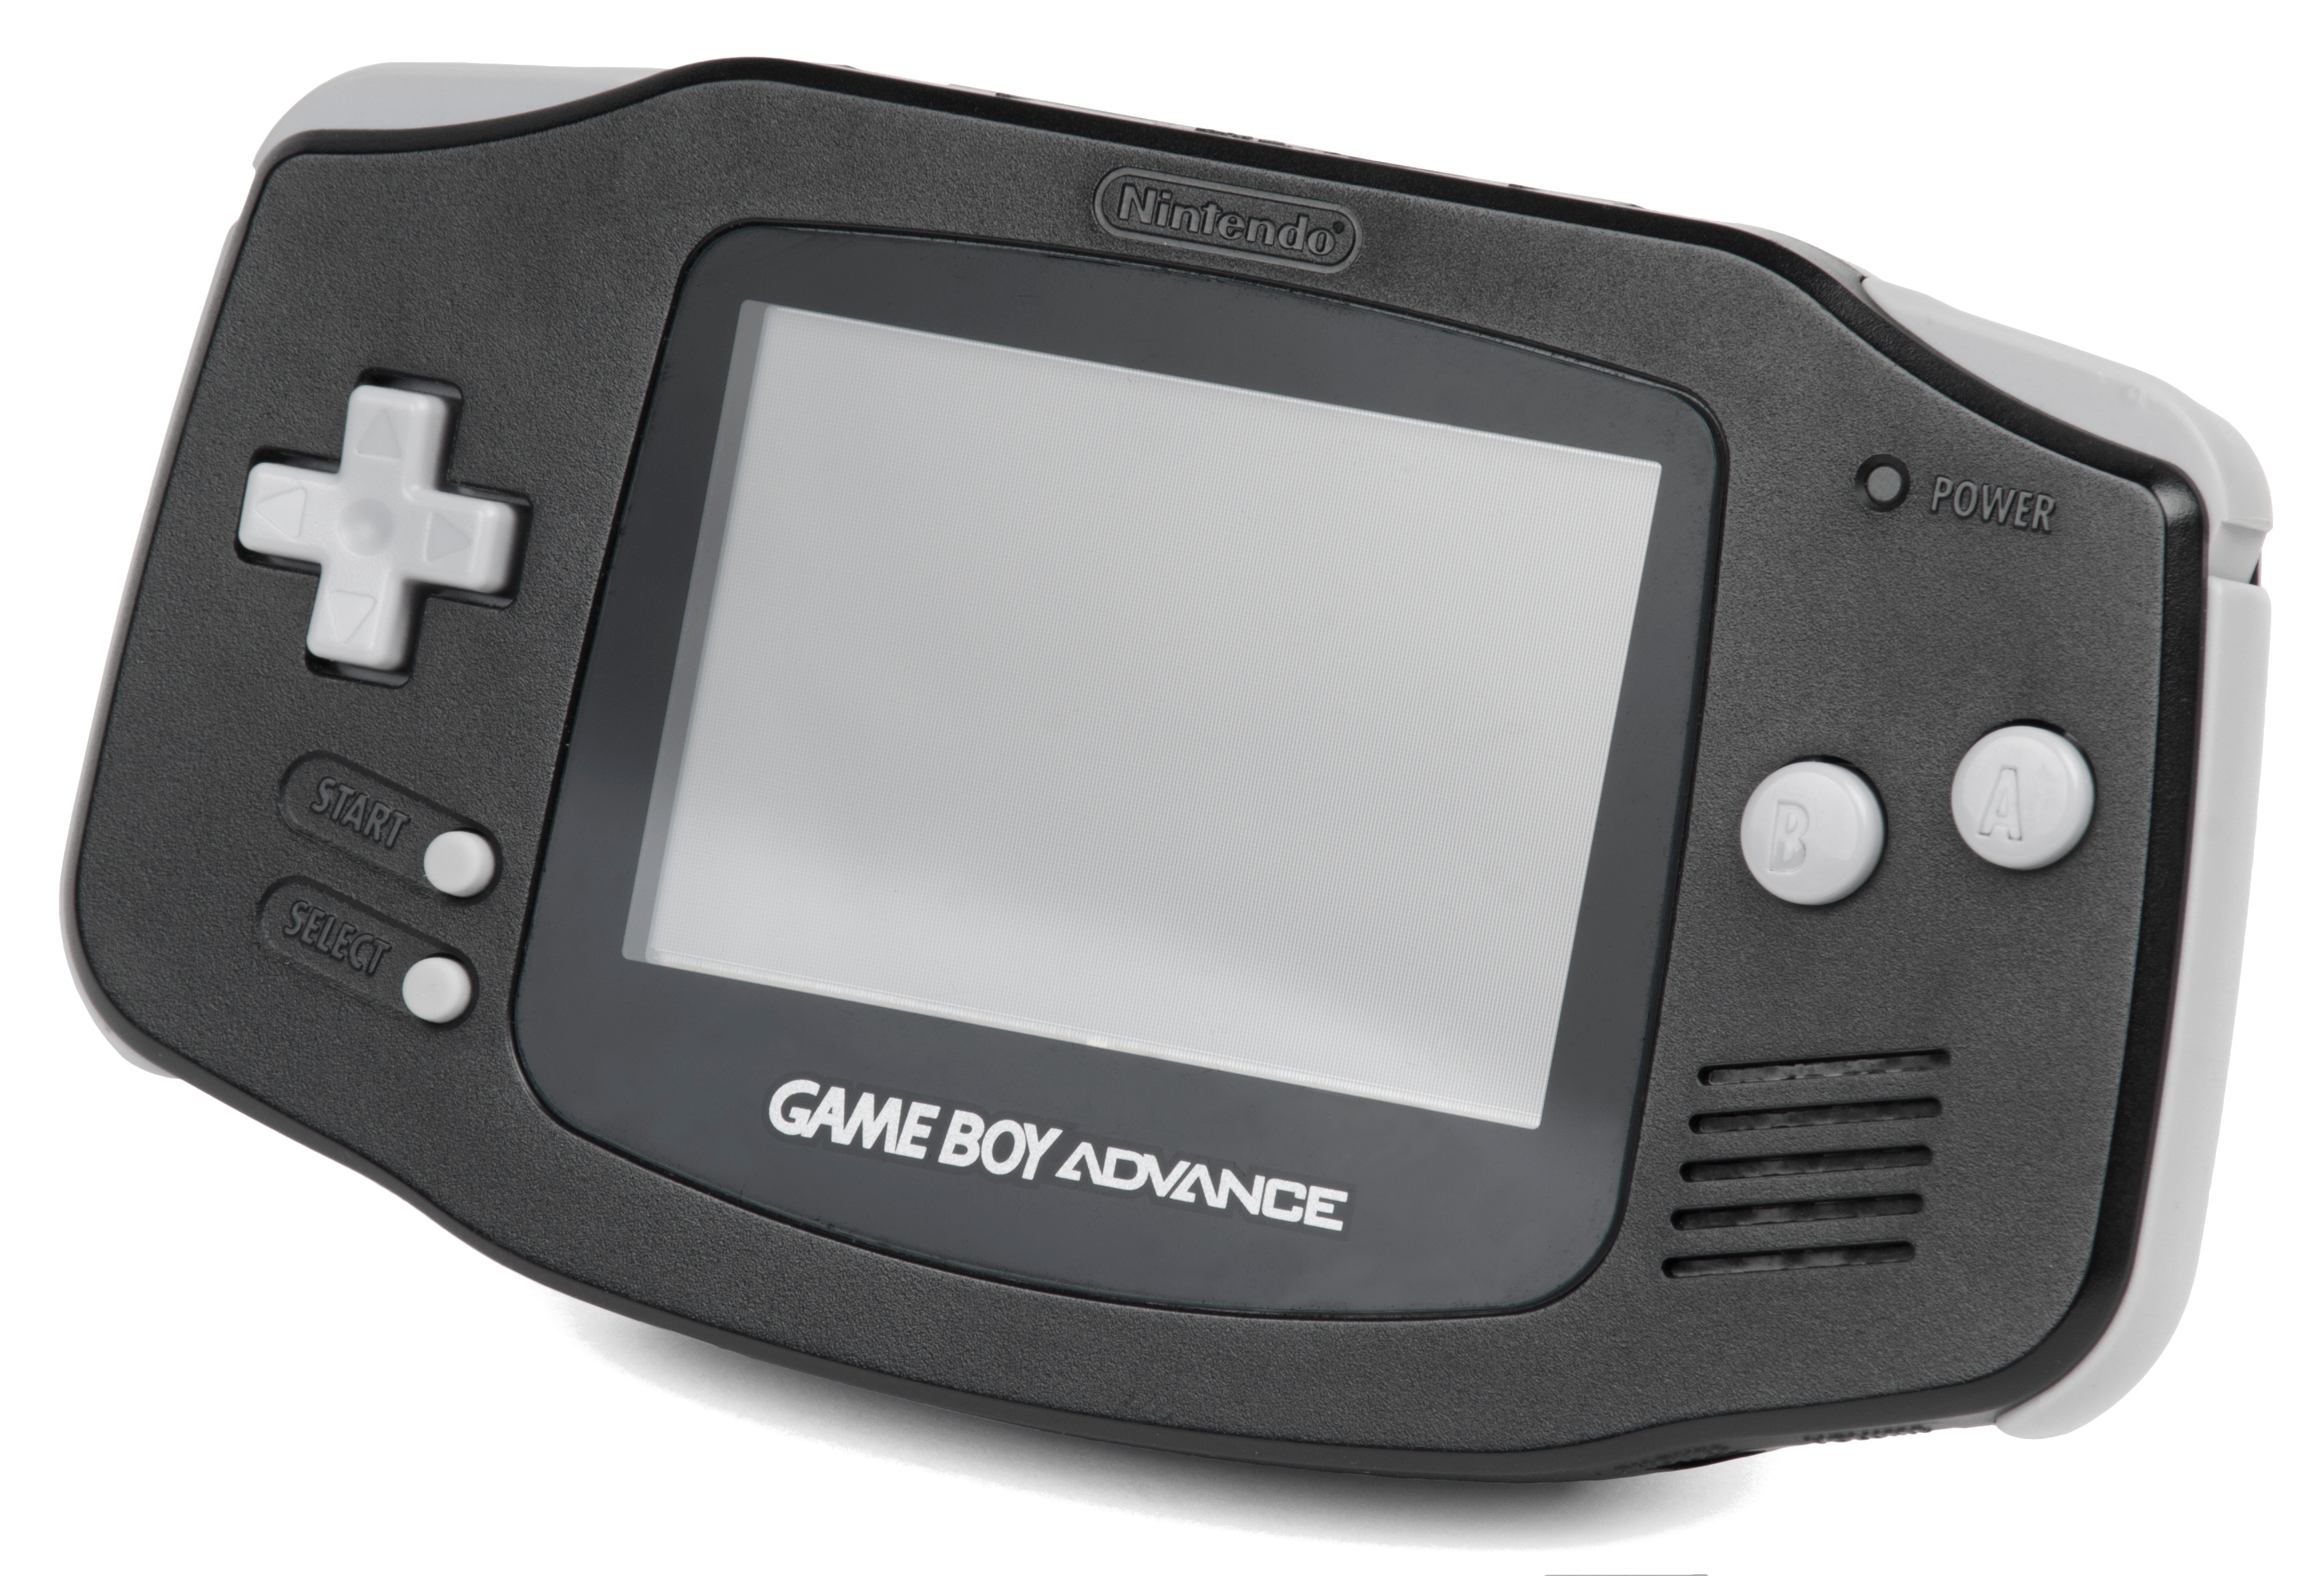 Game-Boy-Advance-Blk_mod